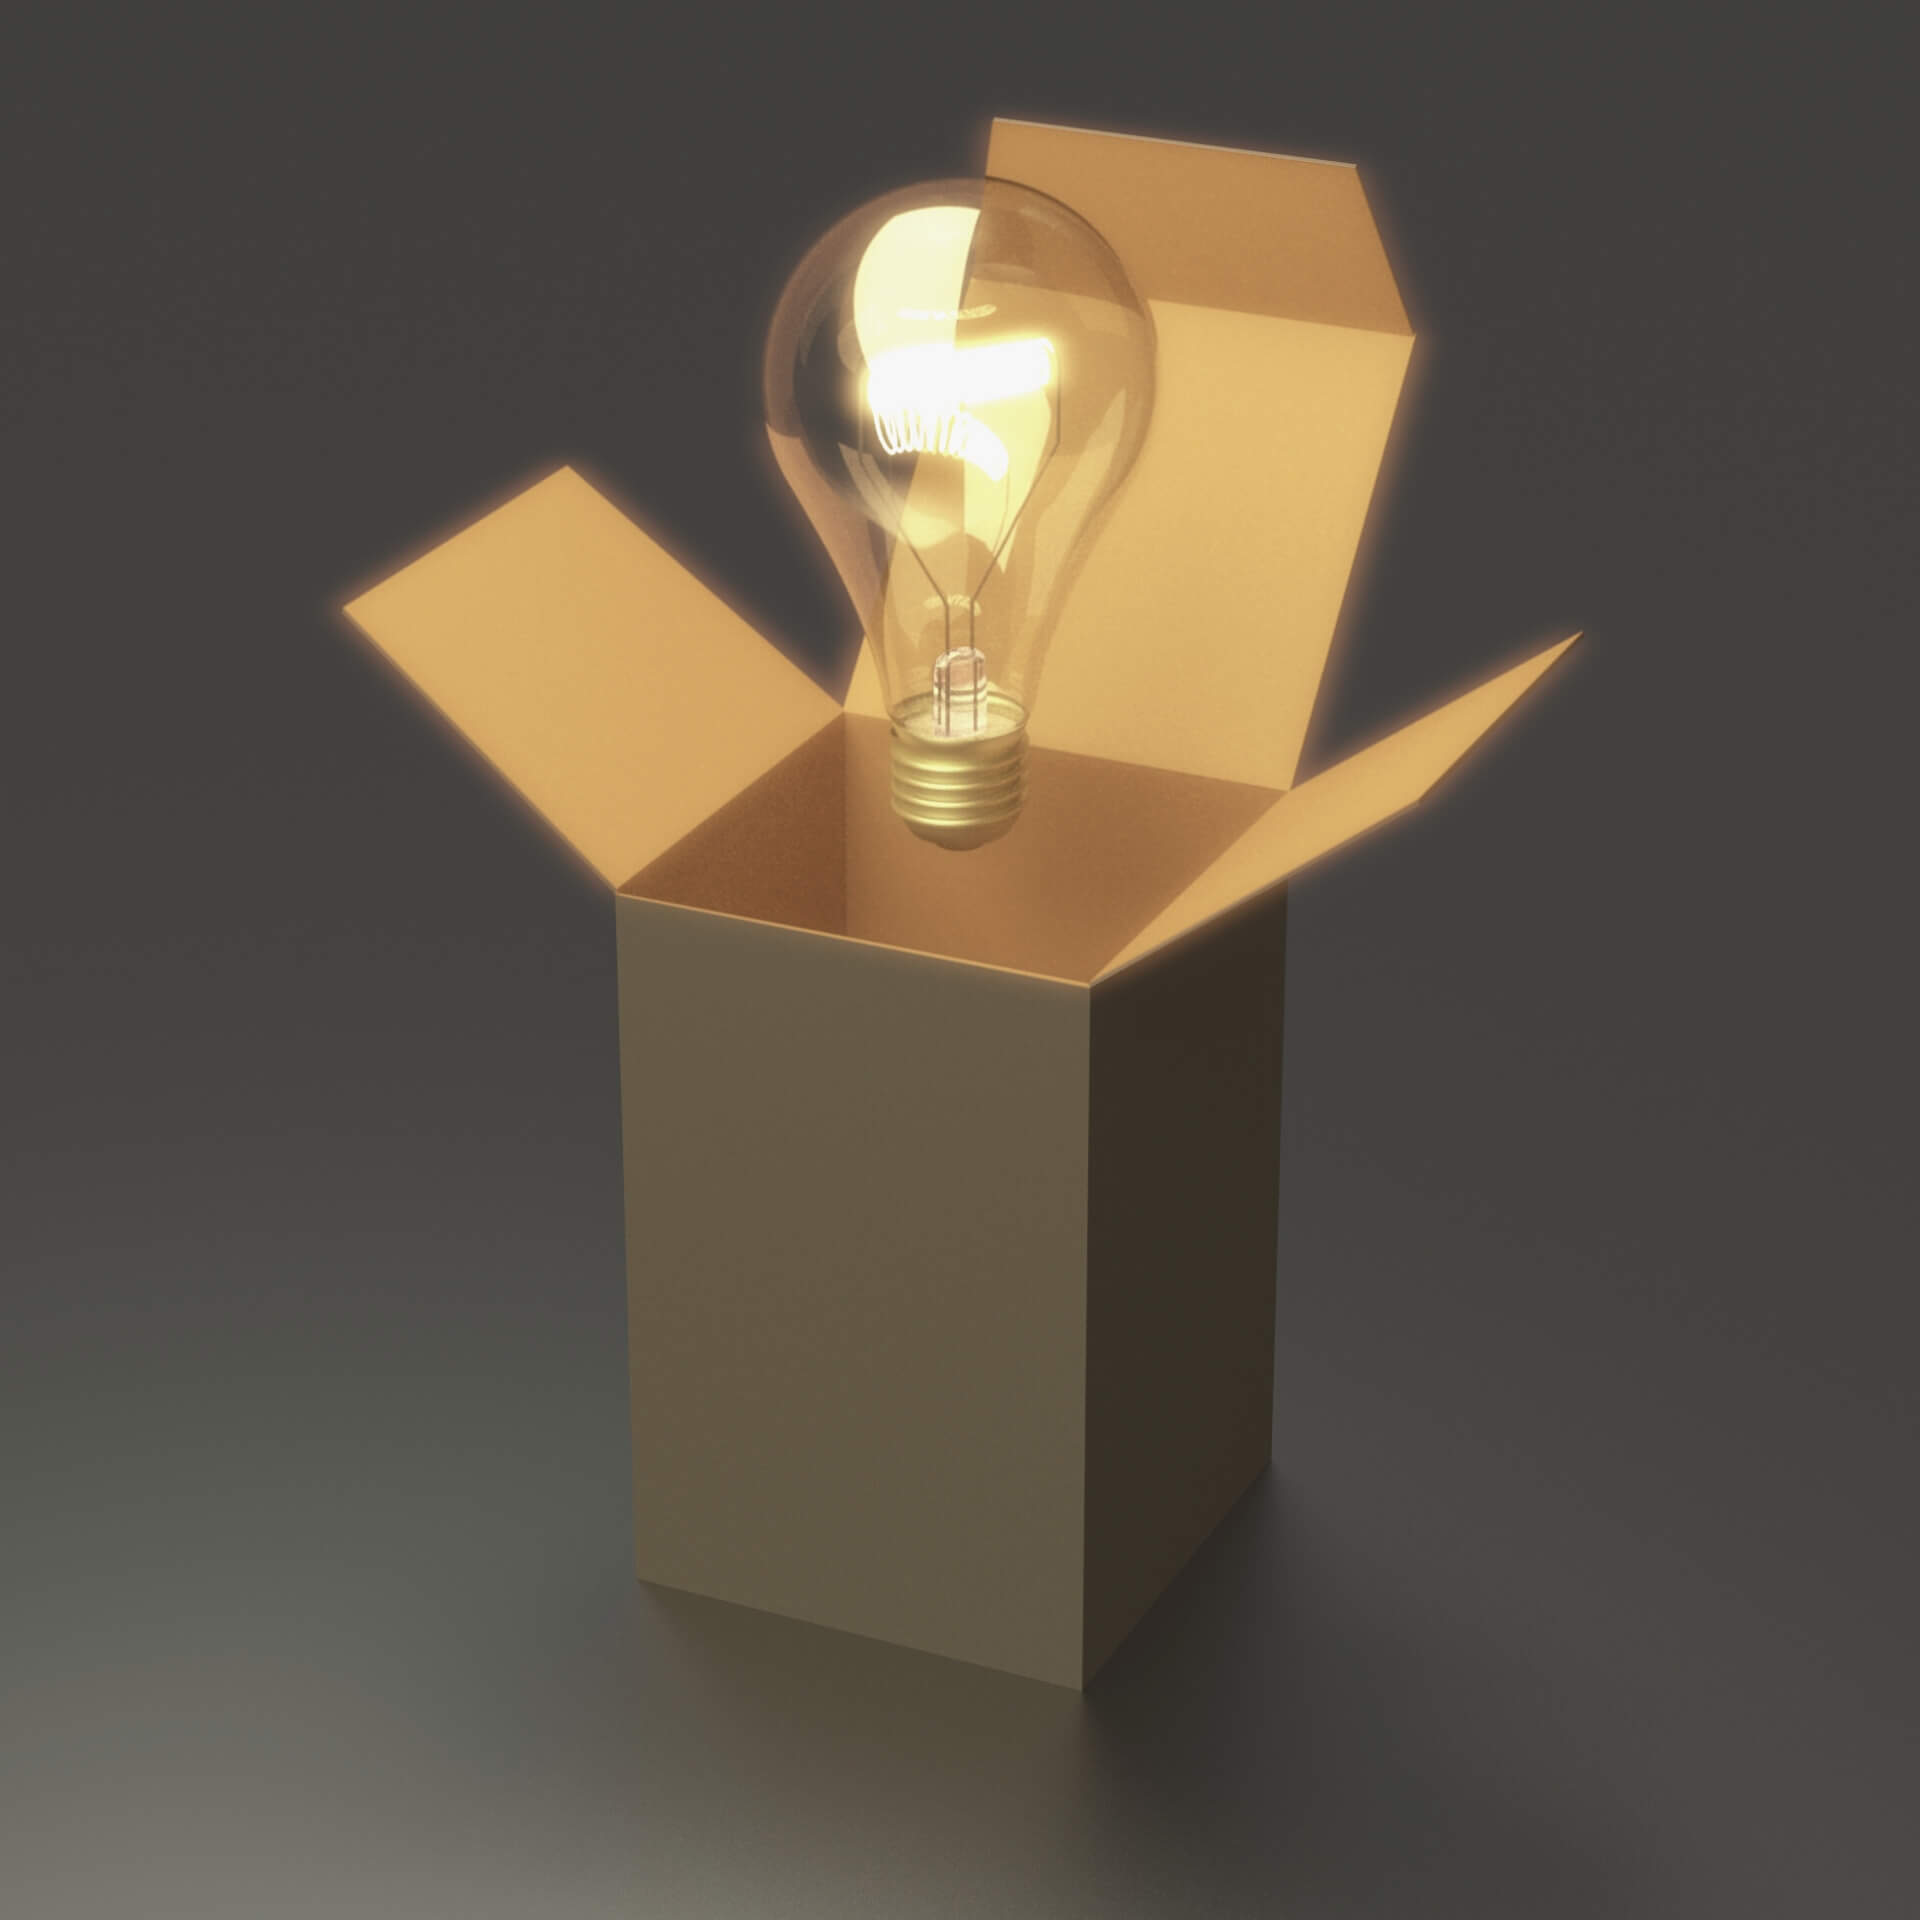 12 Creative Out of the Box Web Design Ideas: Light bulb outside of a cardboard box.